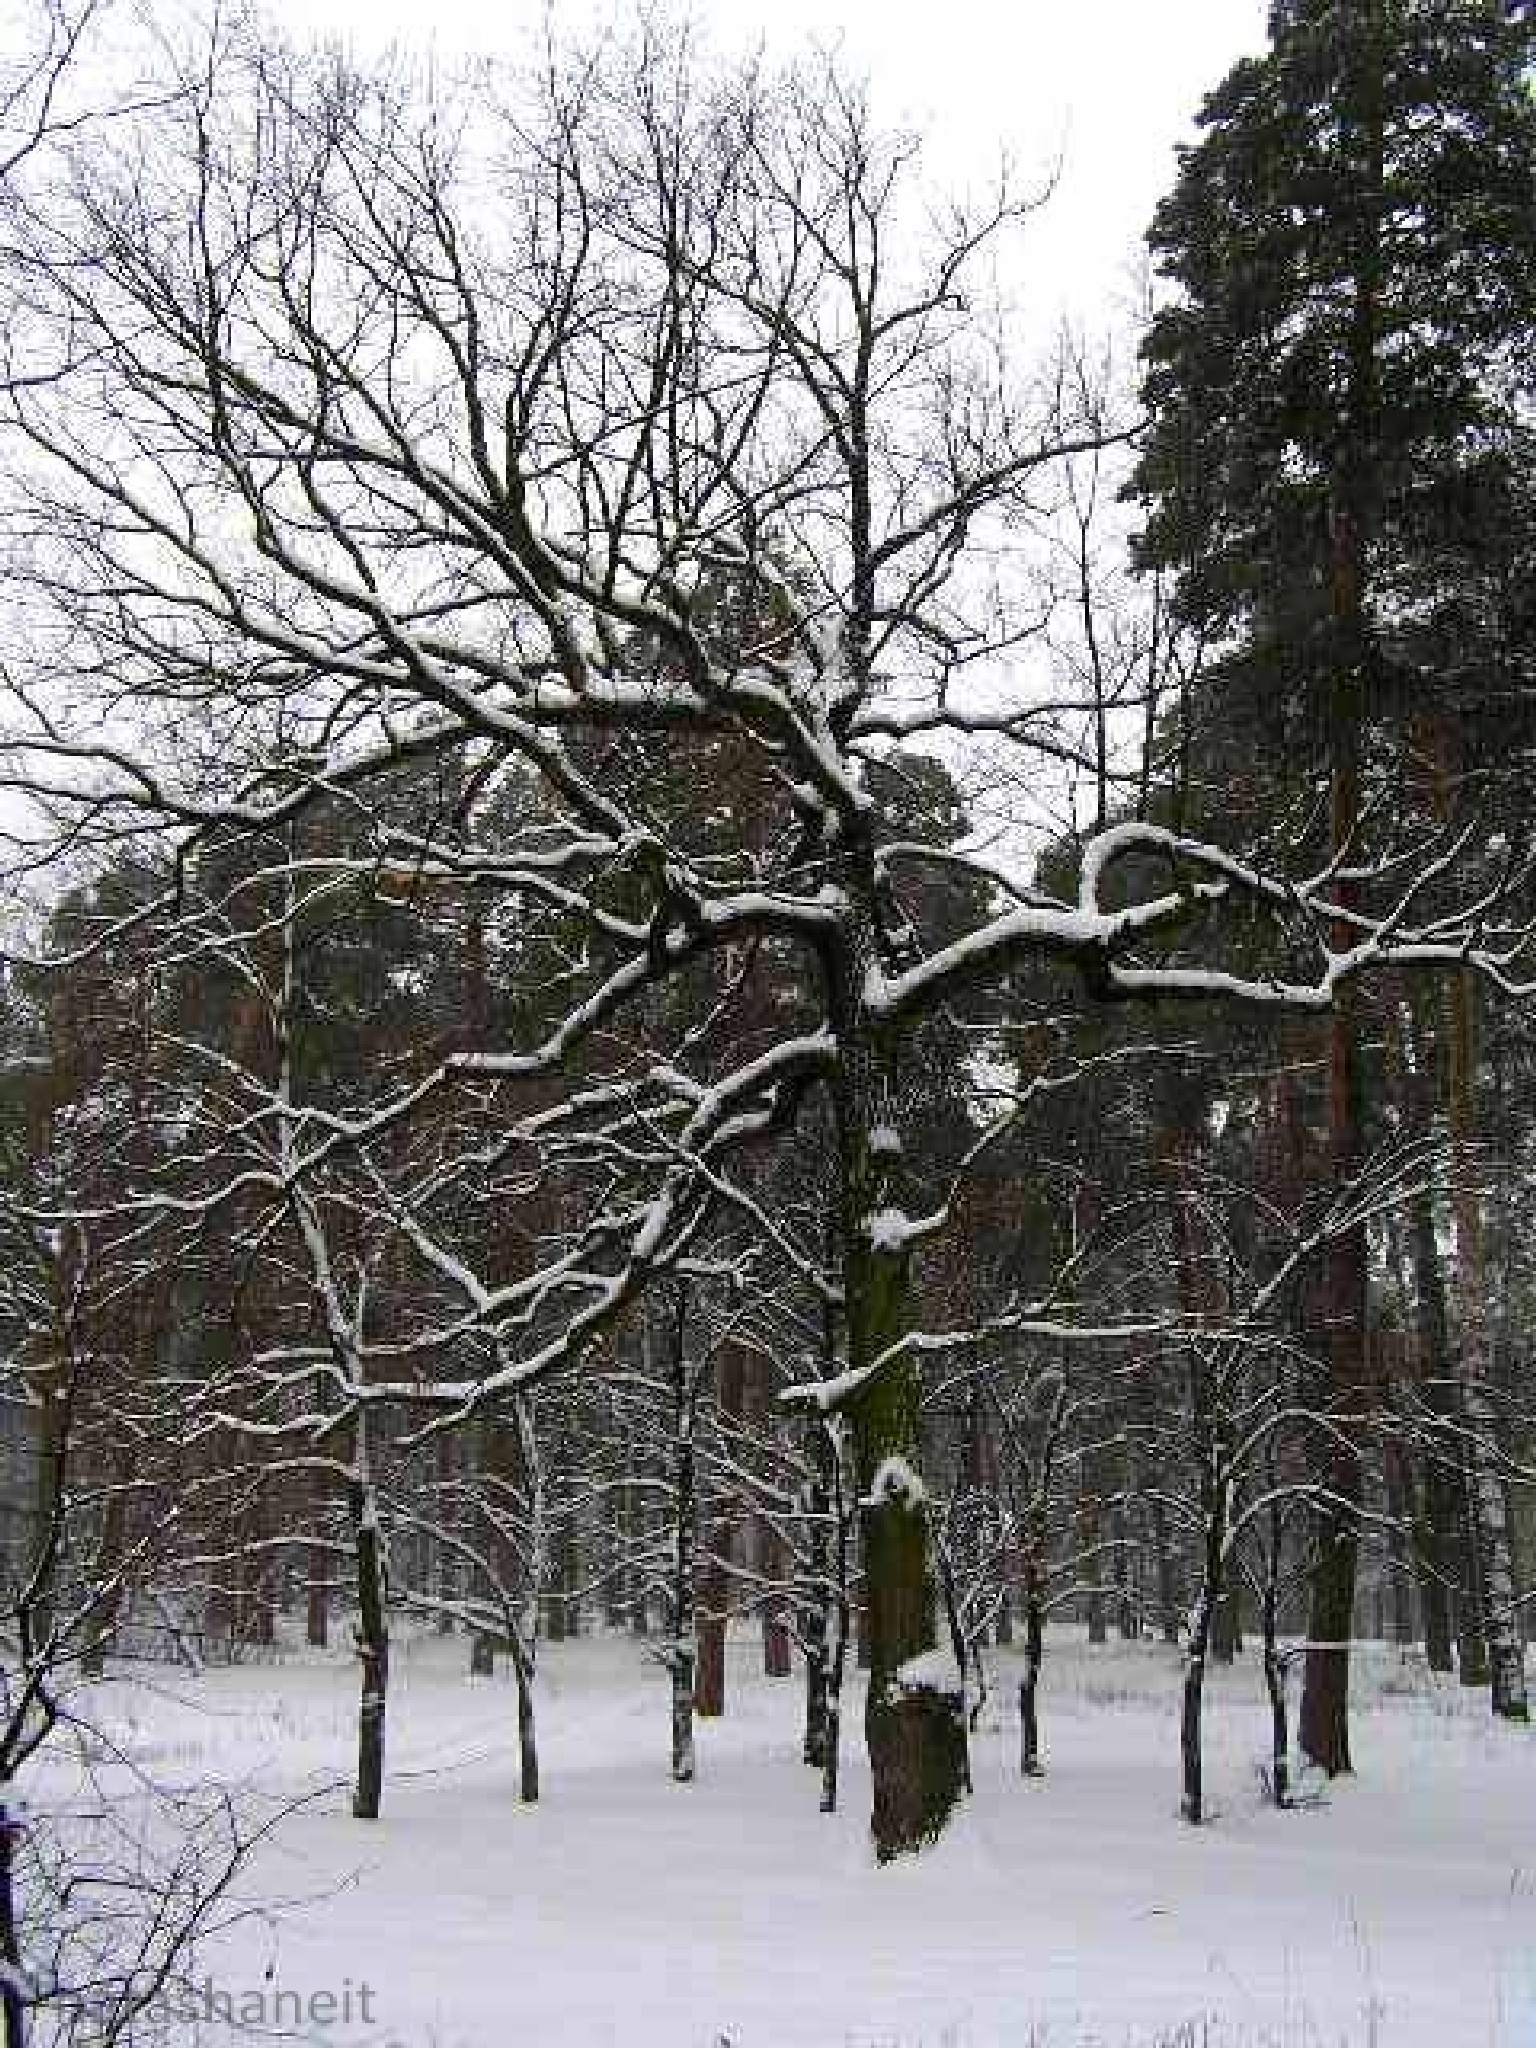 Trees in the snowy forest by natashaneit